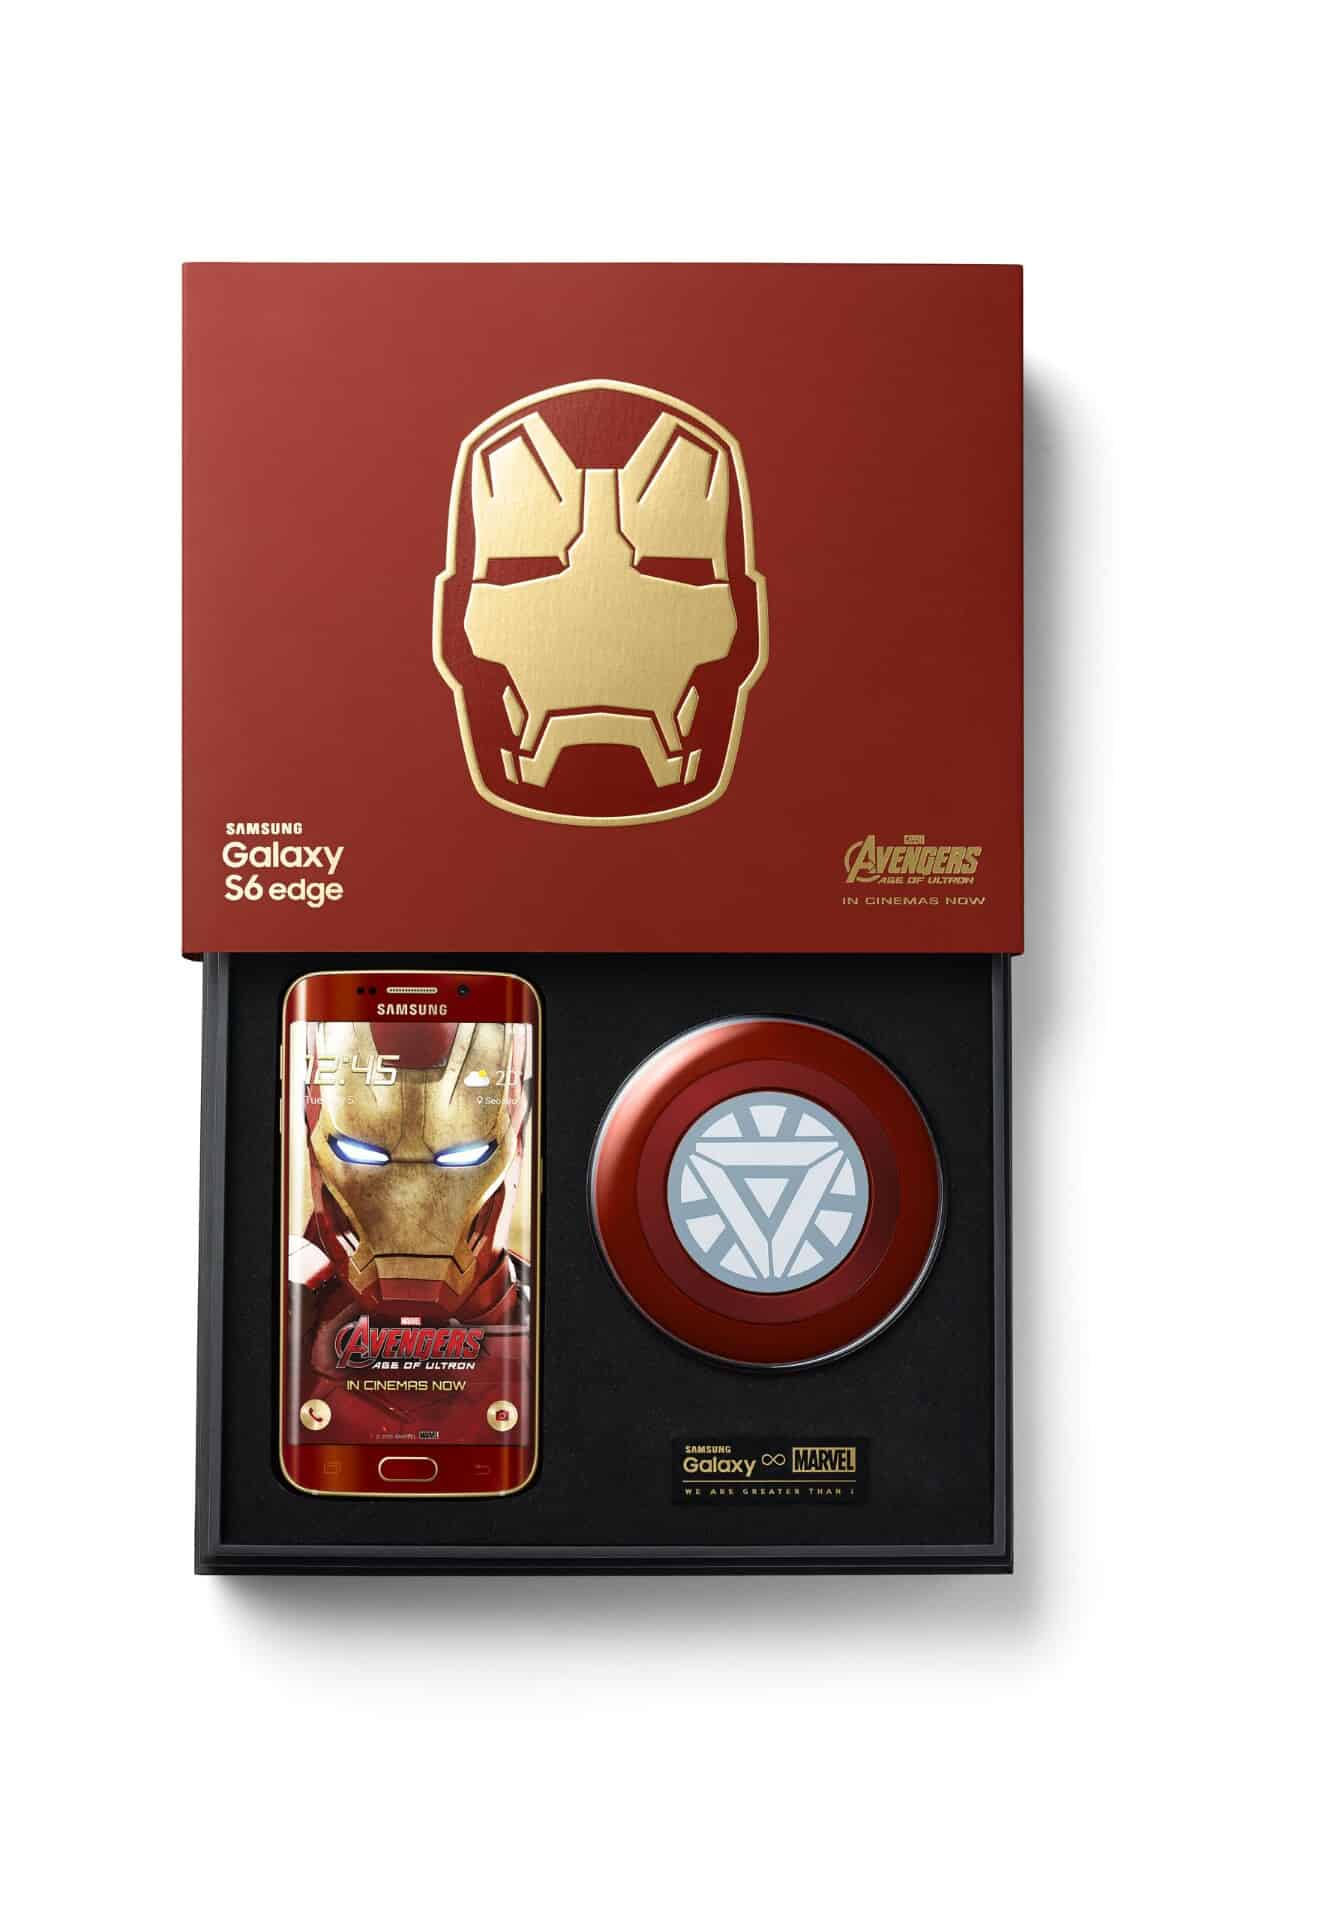 Galaxy S6 edge Iron Man Limited Edition 9 wm